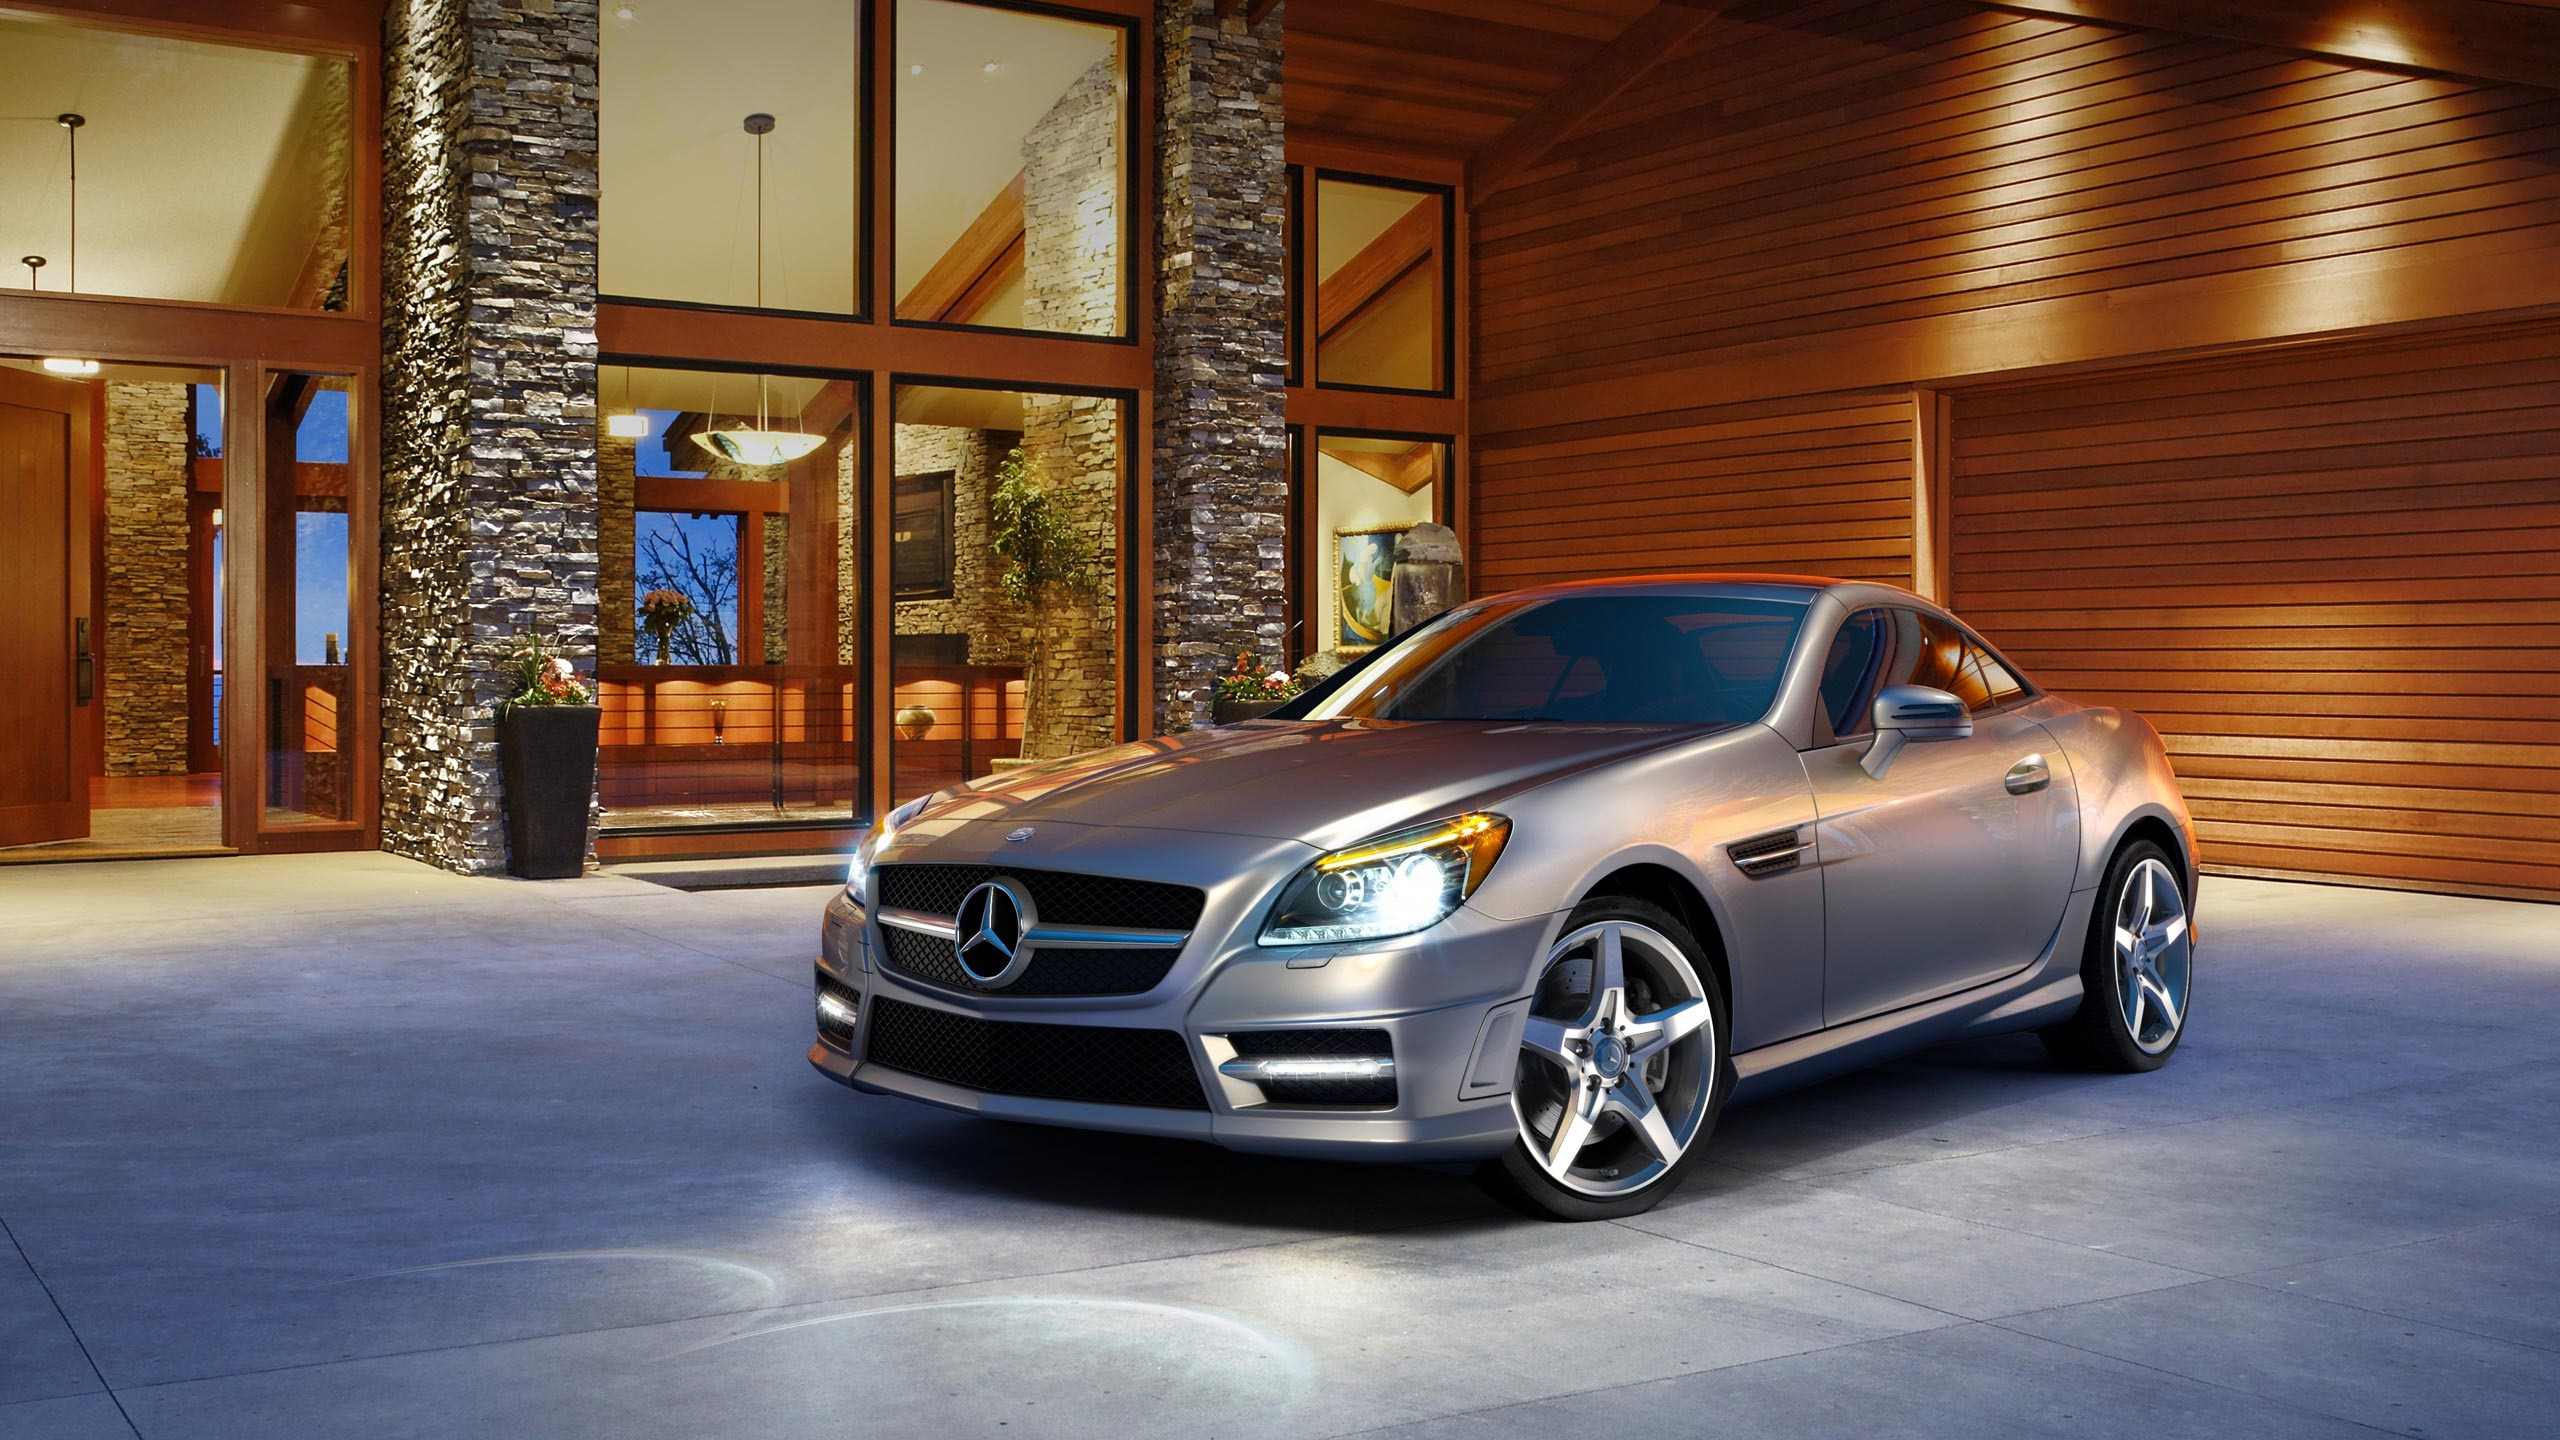 2012 SLK Class Roadster for 2560x1440 HDTV resolution